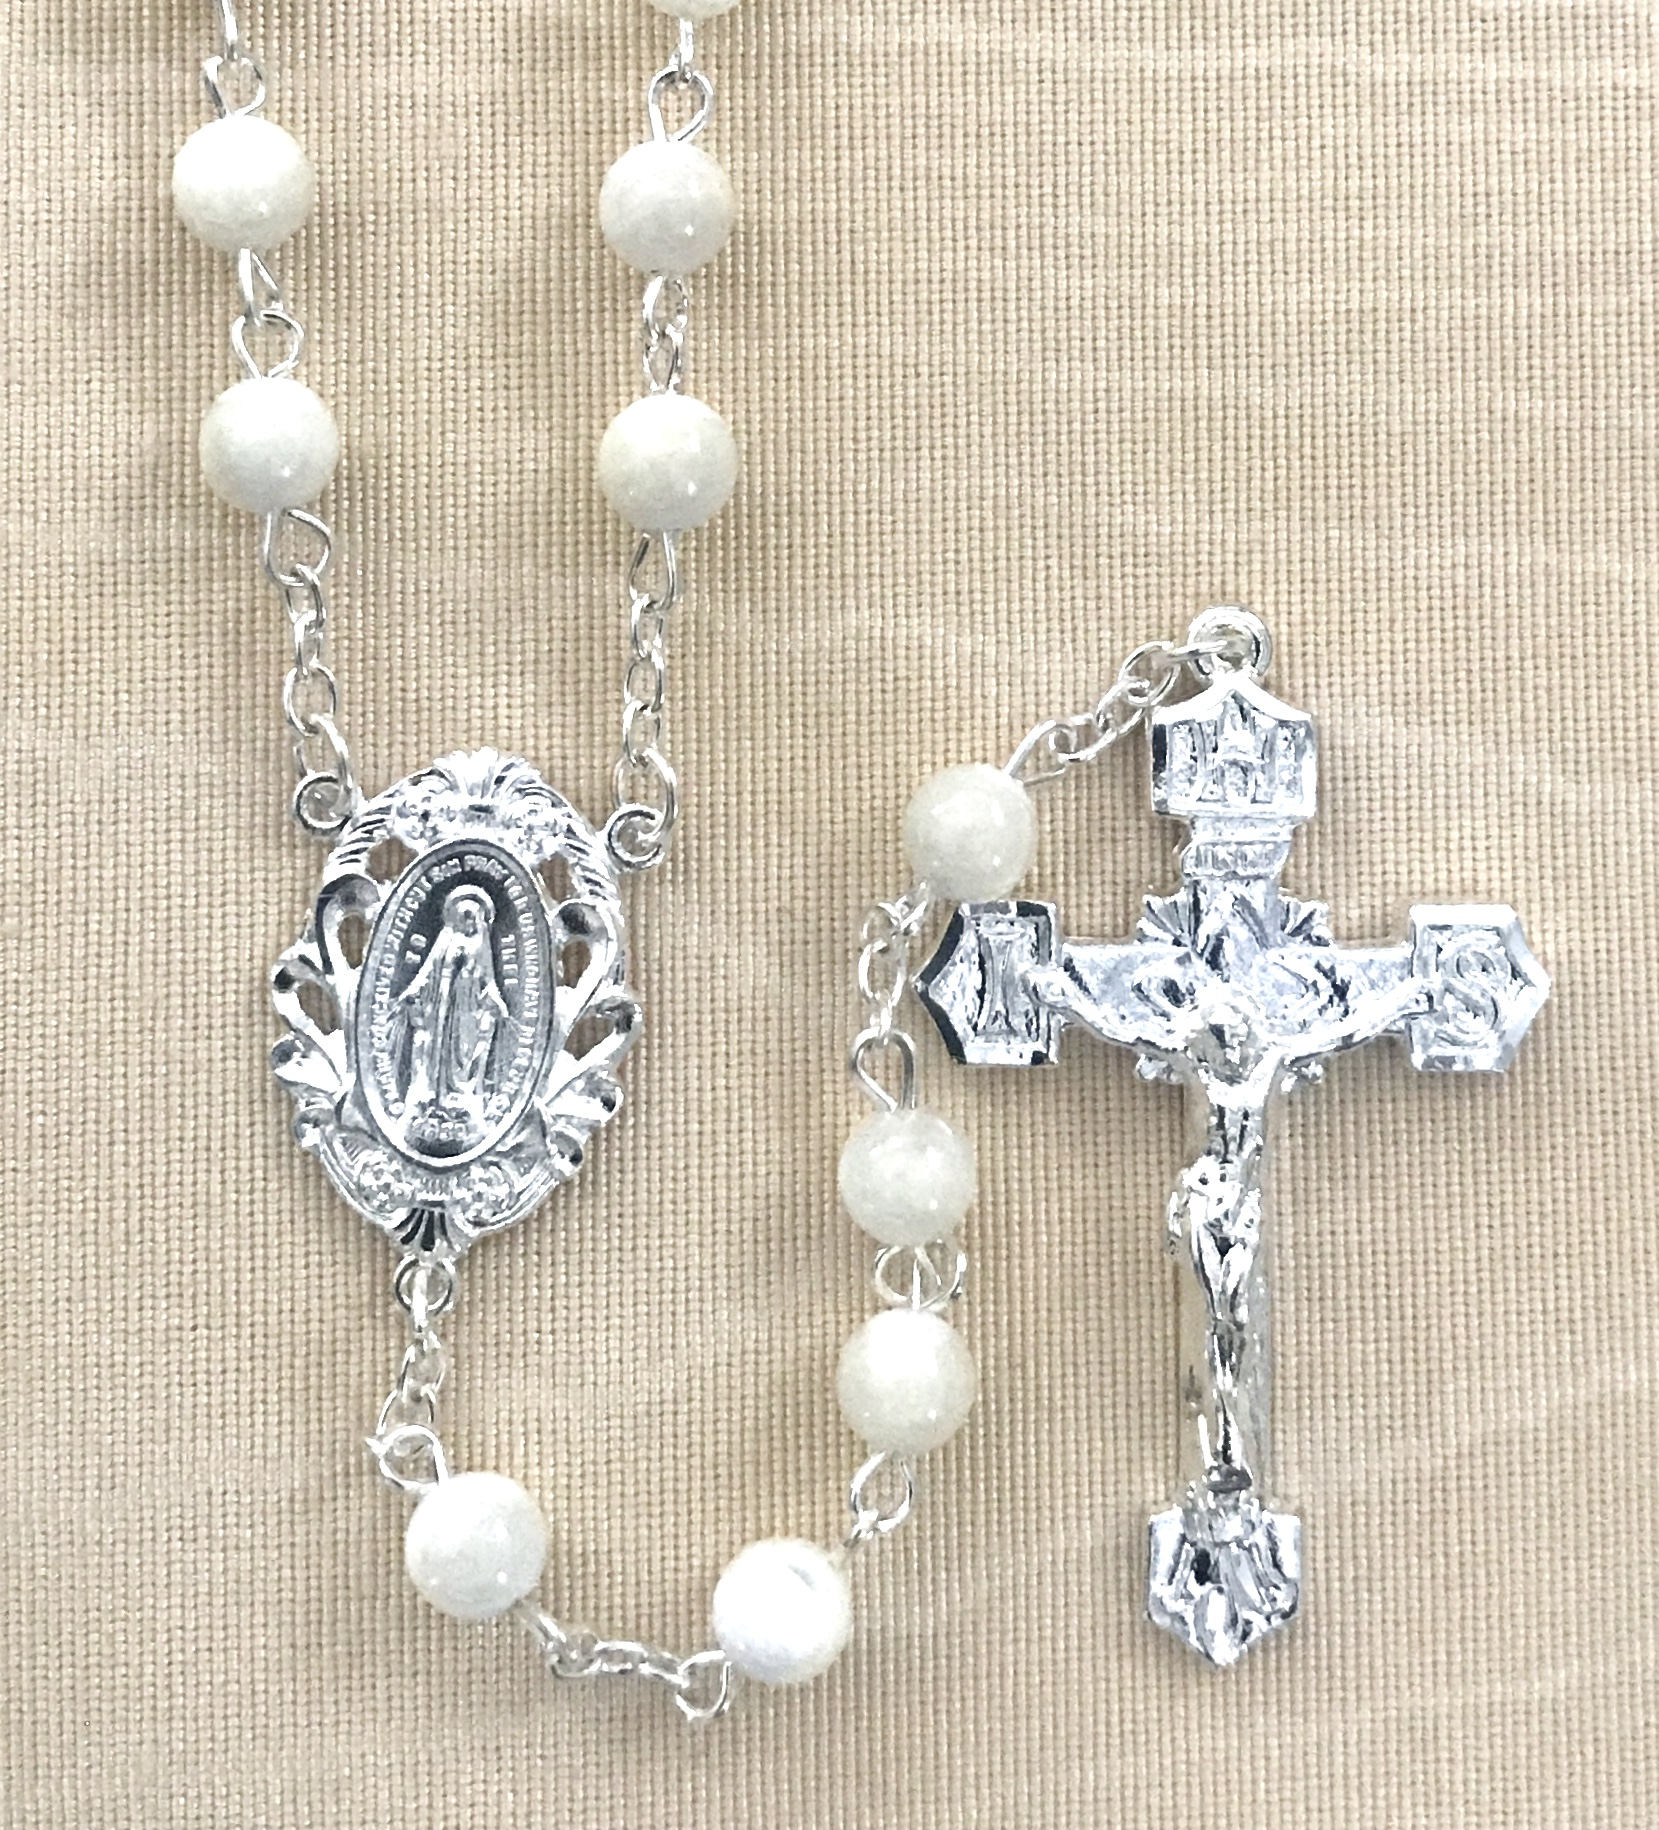 6MM MOTHER OF PEARL GEMSTONE ROSARY WITH STERLING SILVER PLATED CRUCIFIX AND CENTER GIFT BOXED